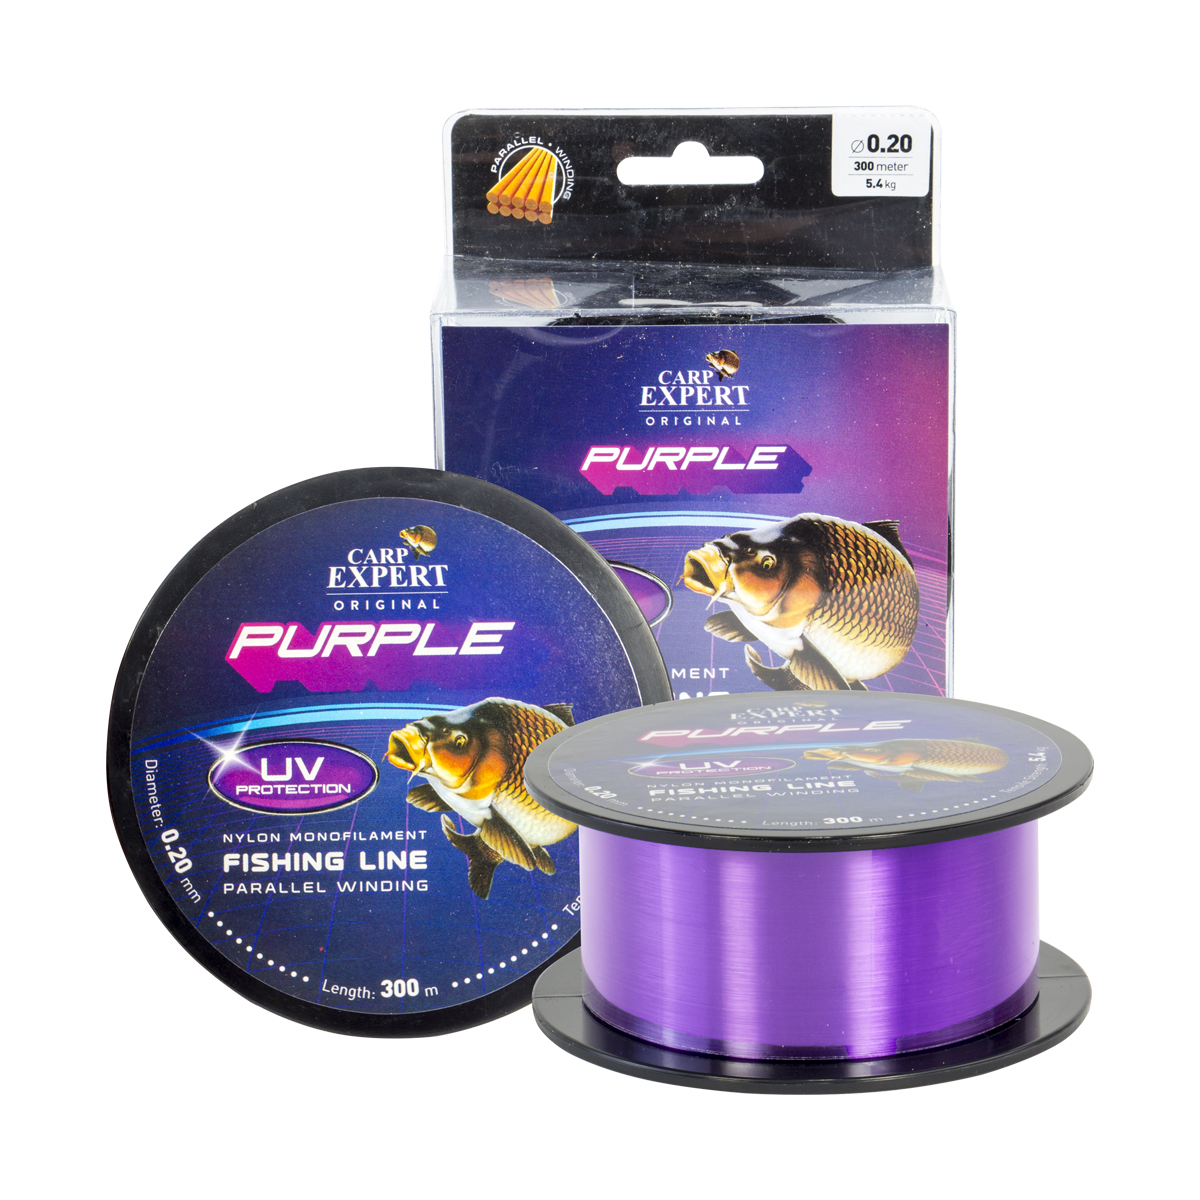 CARP EXPERT UV Purple 1000 m